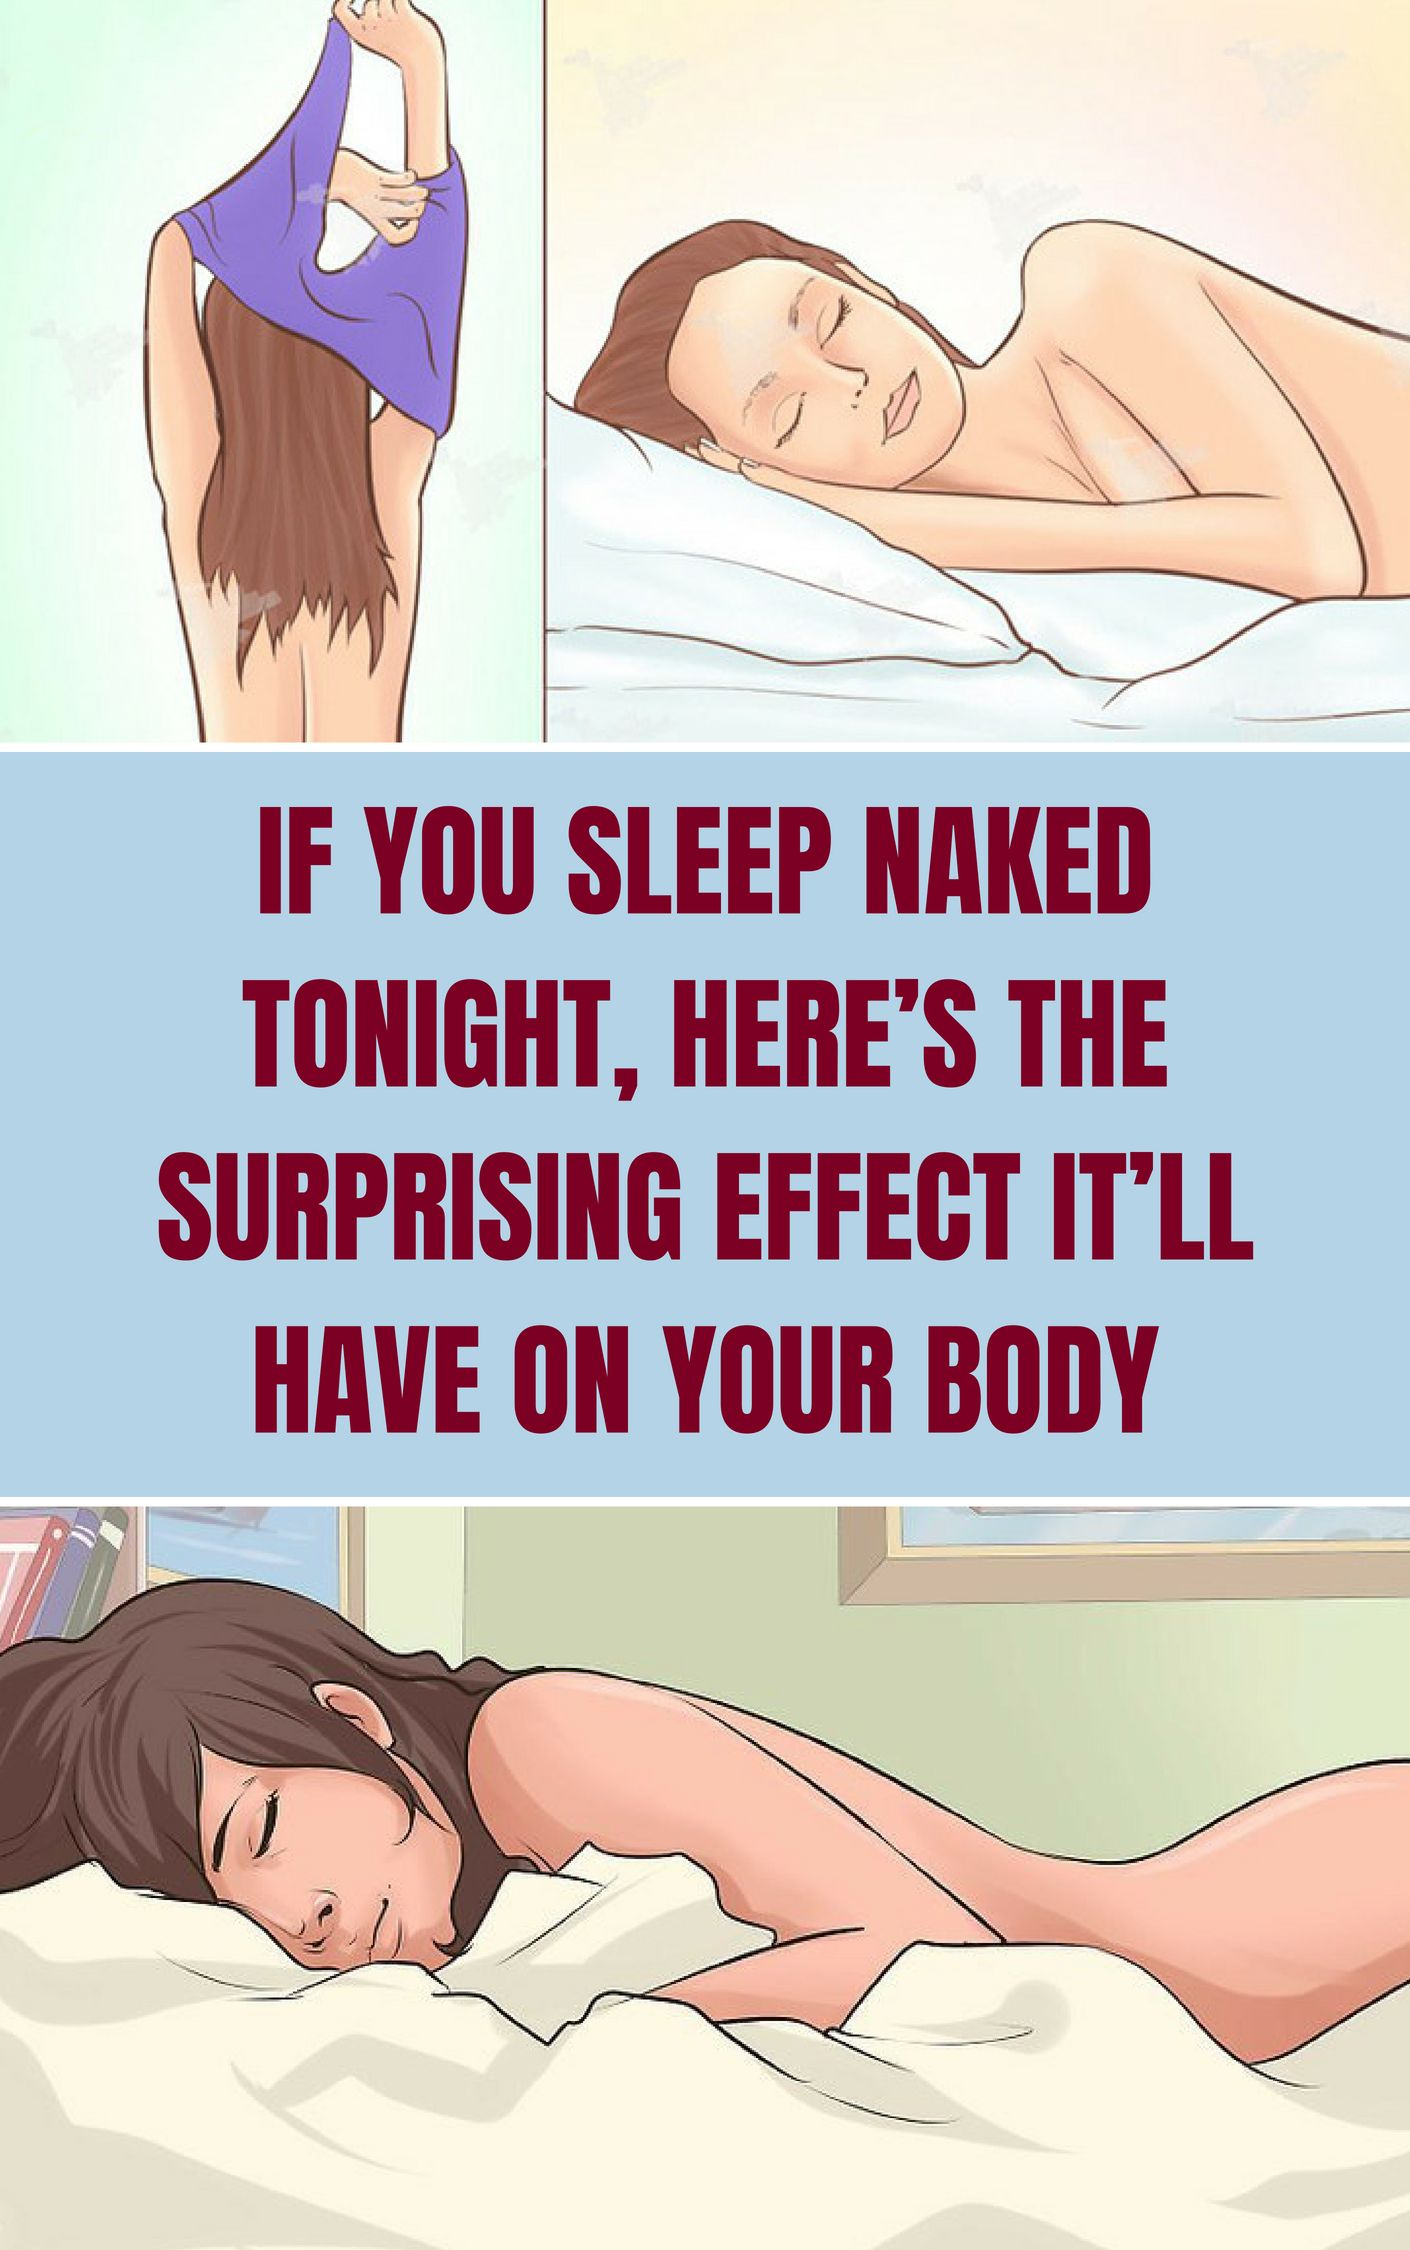 Home remedies does girls sleep naked